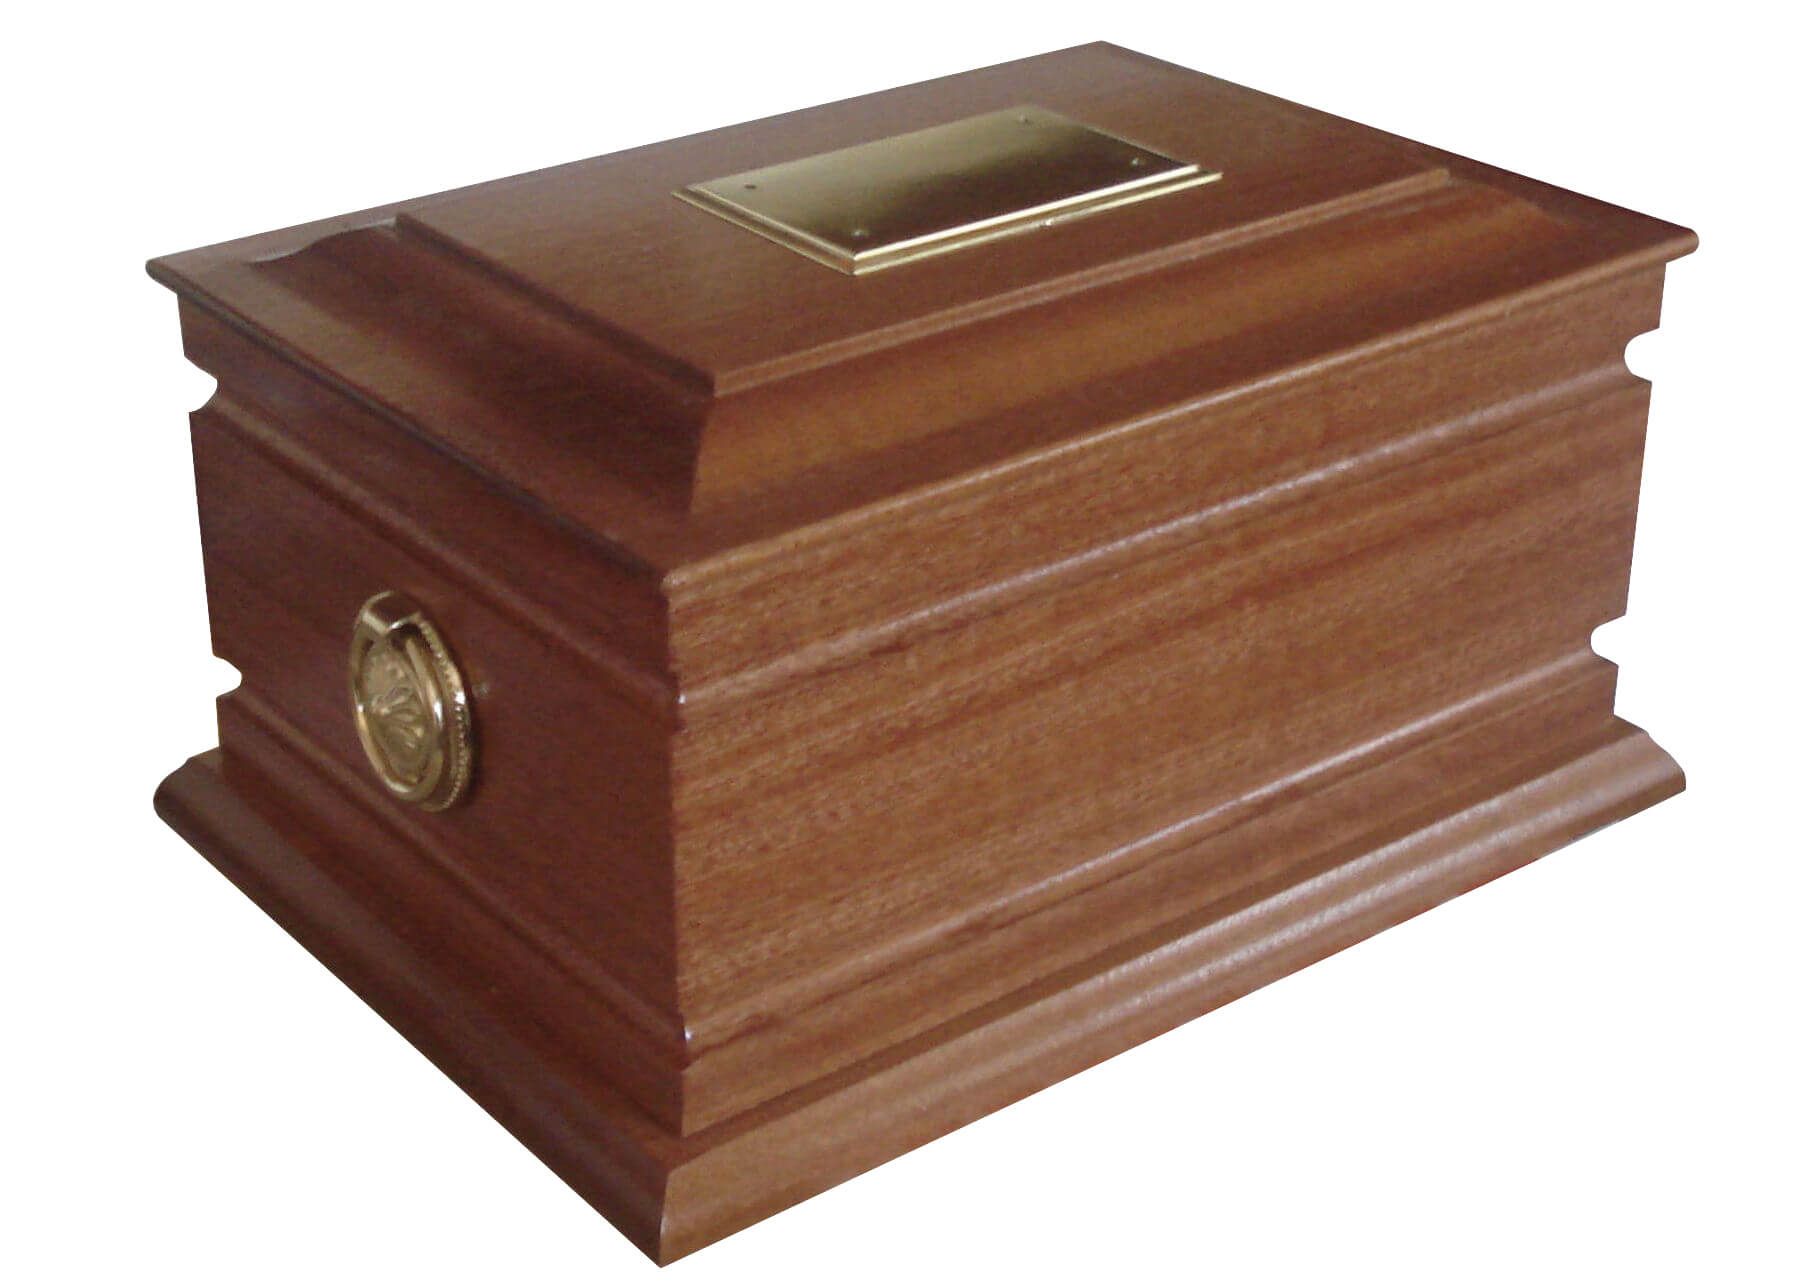 Solid mahogany ashes casket with continuous routered fluted panels.